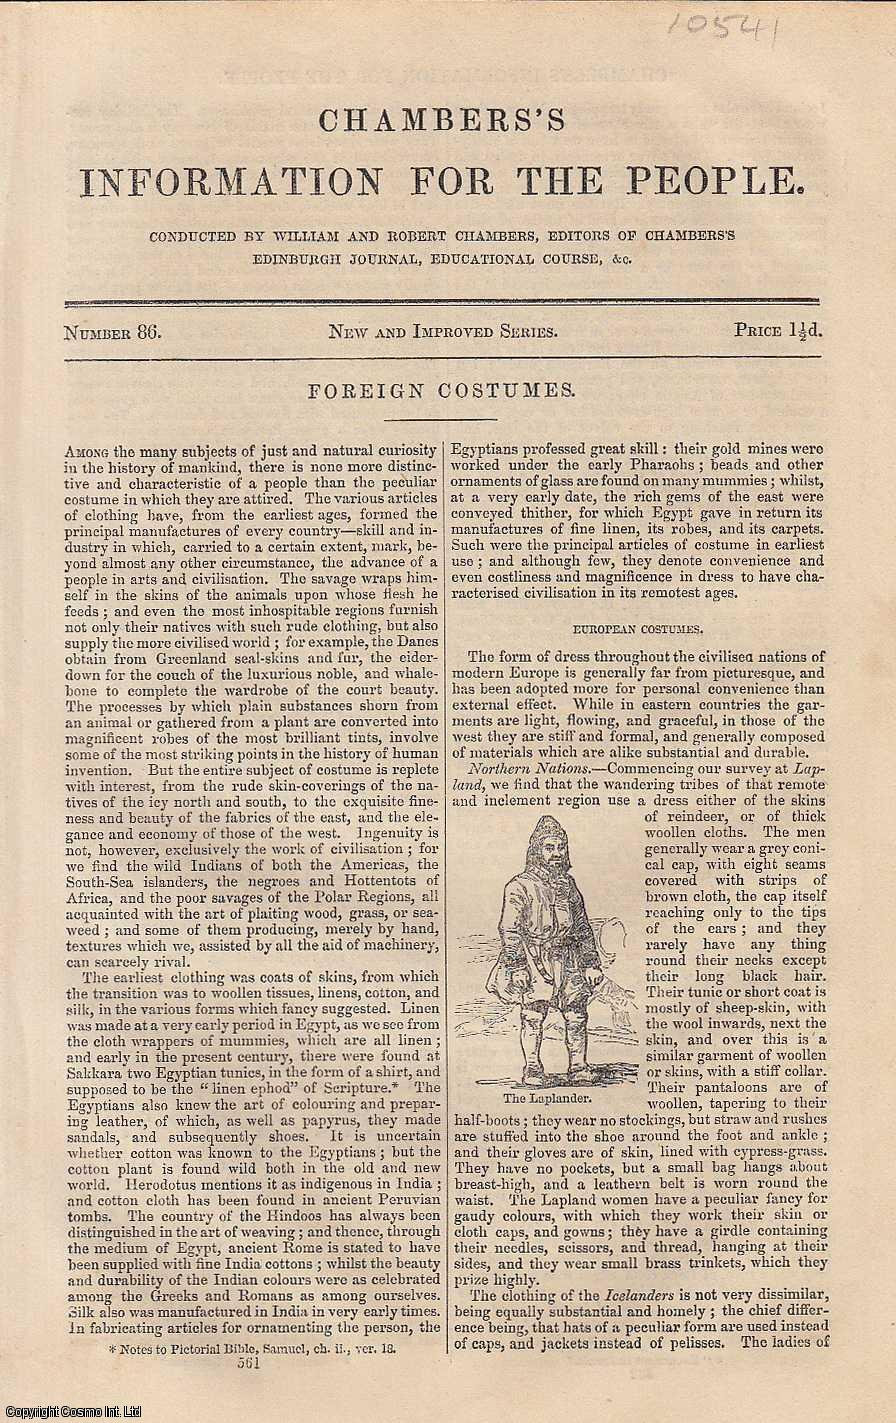 Foreign Costumes. An article from Chambers's Information for the People., Chambers, William & Robert.